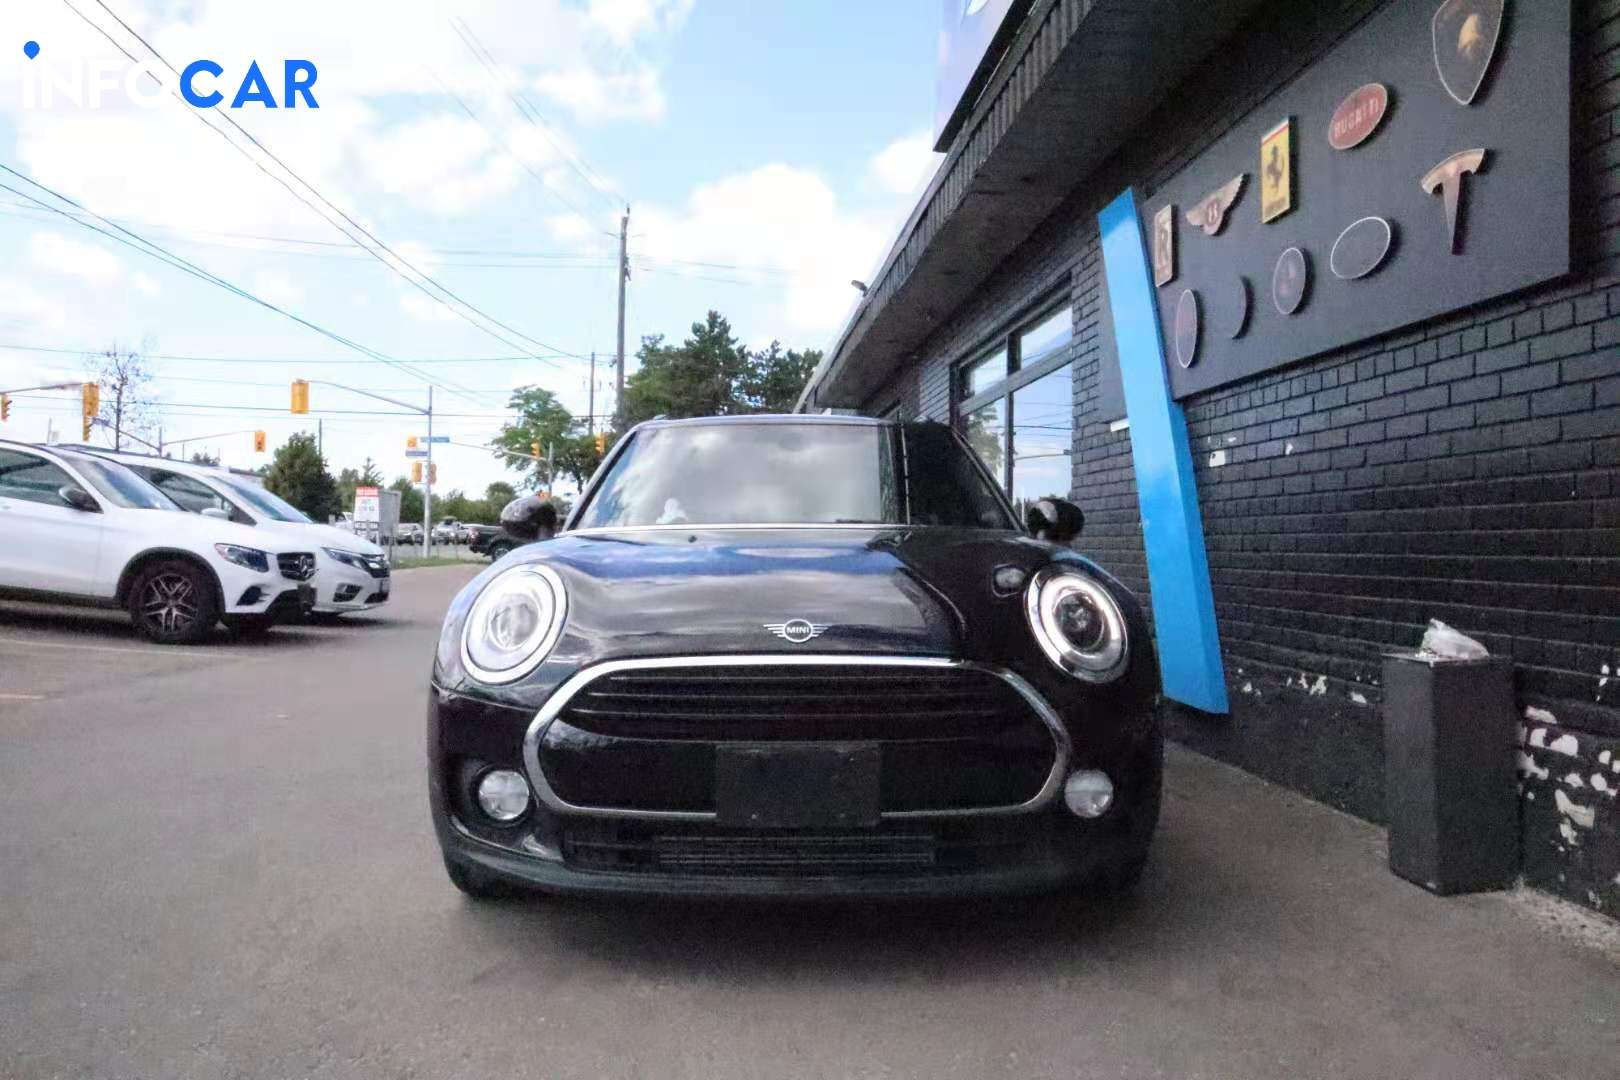 2019 MINI Clubman null - INFOCAR - Toronto's Most Comprehensive New and Used Auto Trading Platform